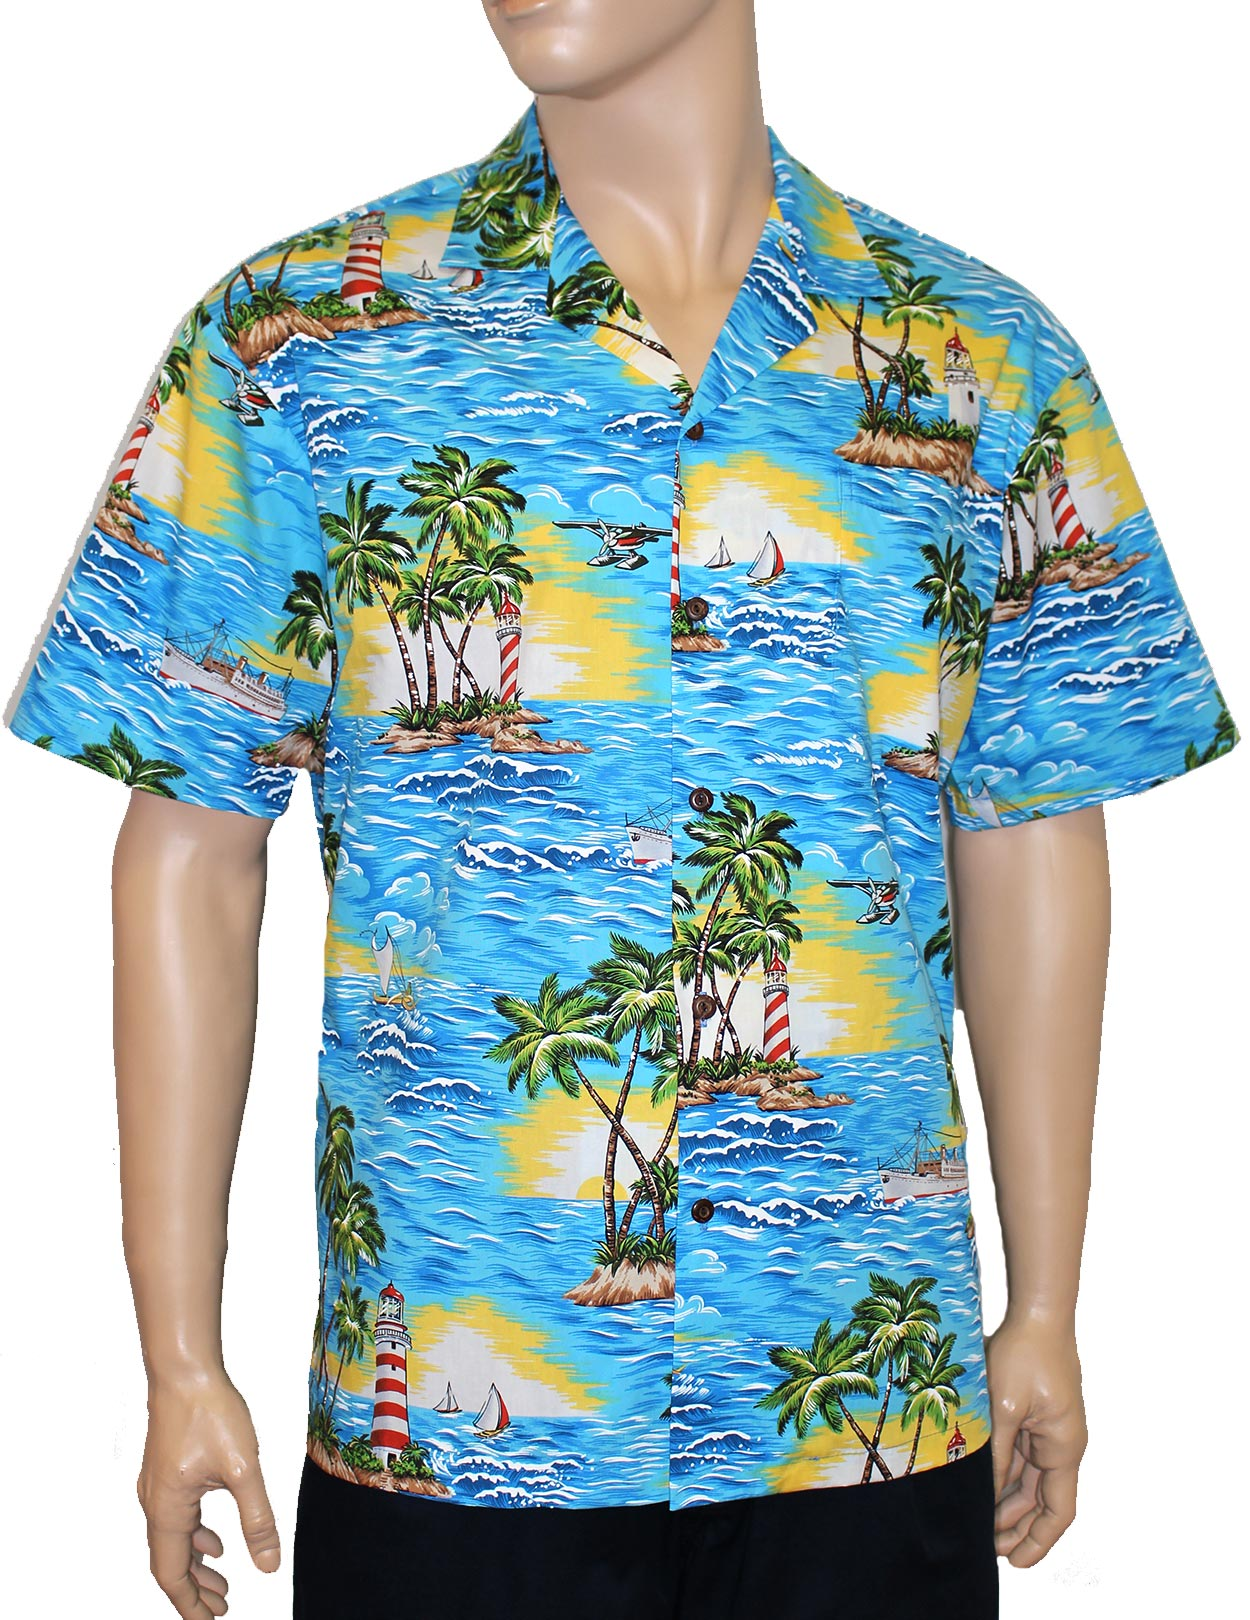 Make a bold statement with our Hawaii T-Shirts, or choose from our wide variety of expressive graphic tees for any season, interest or occasion. Whether you want a sarcastic t-shirt or a geeky t-shirt to embrace your inner nerd, CafePress has the tee you're looking for.